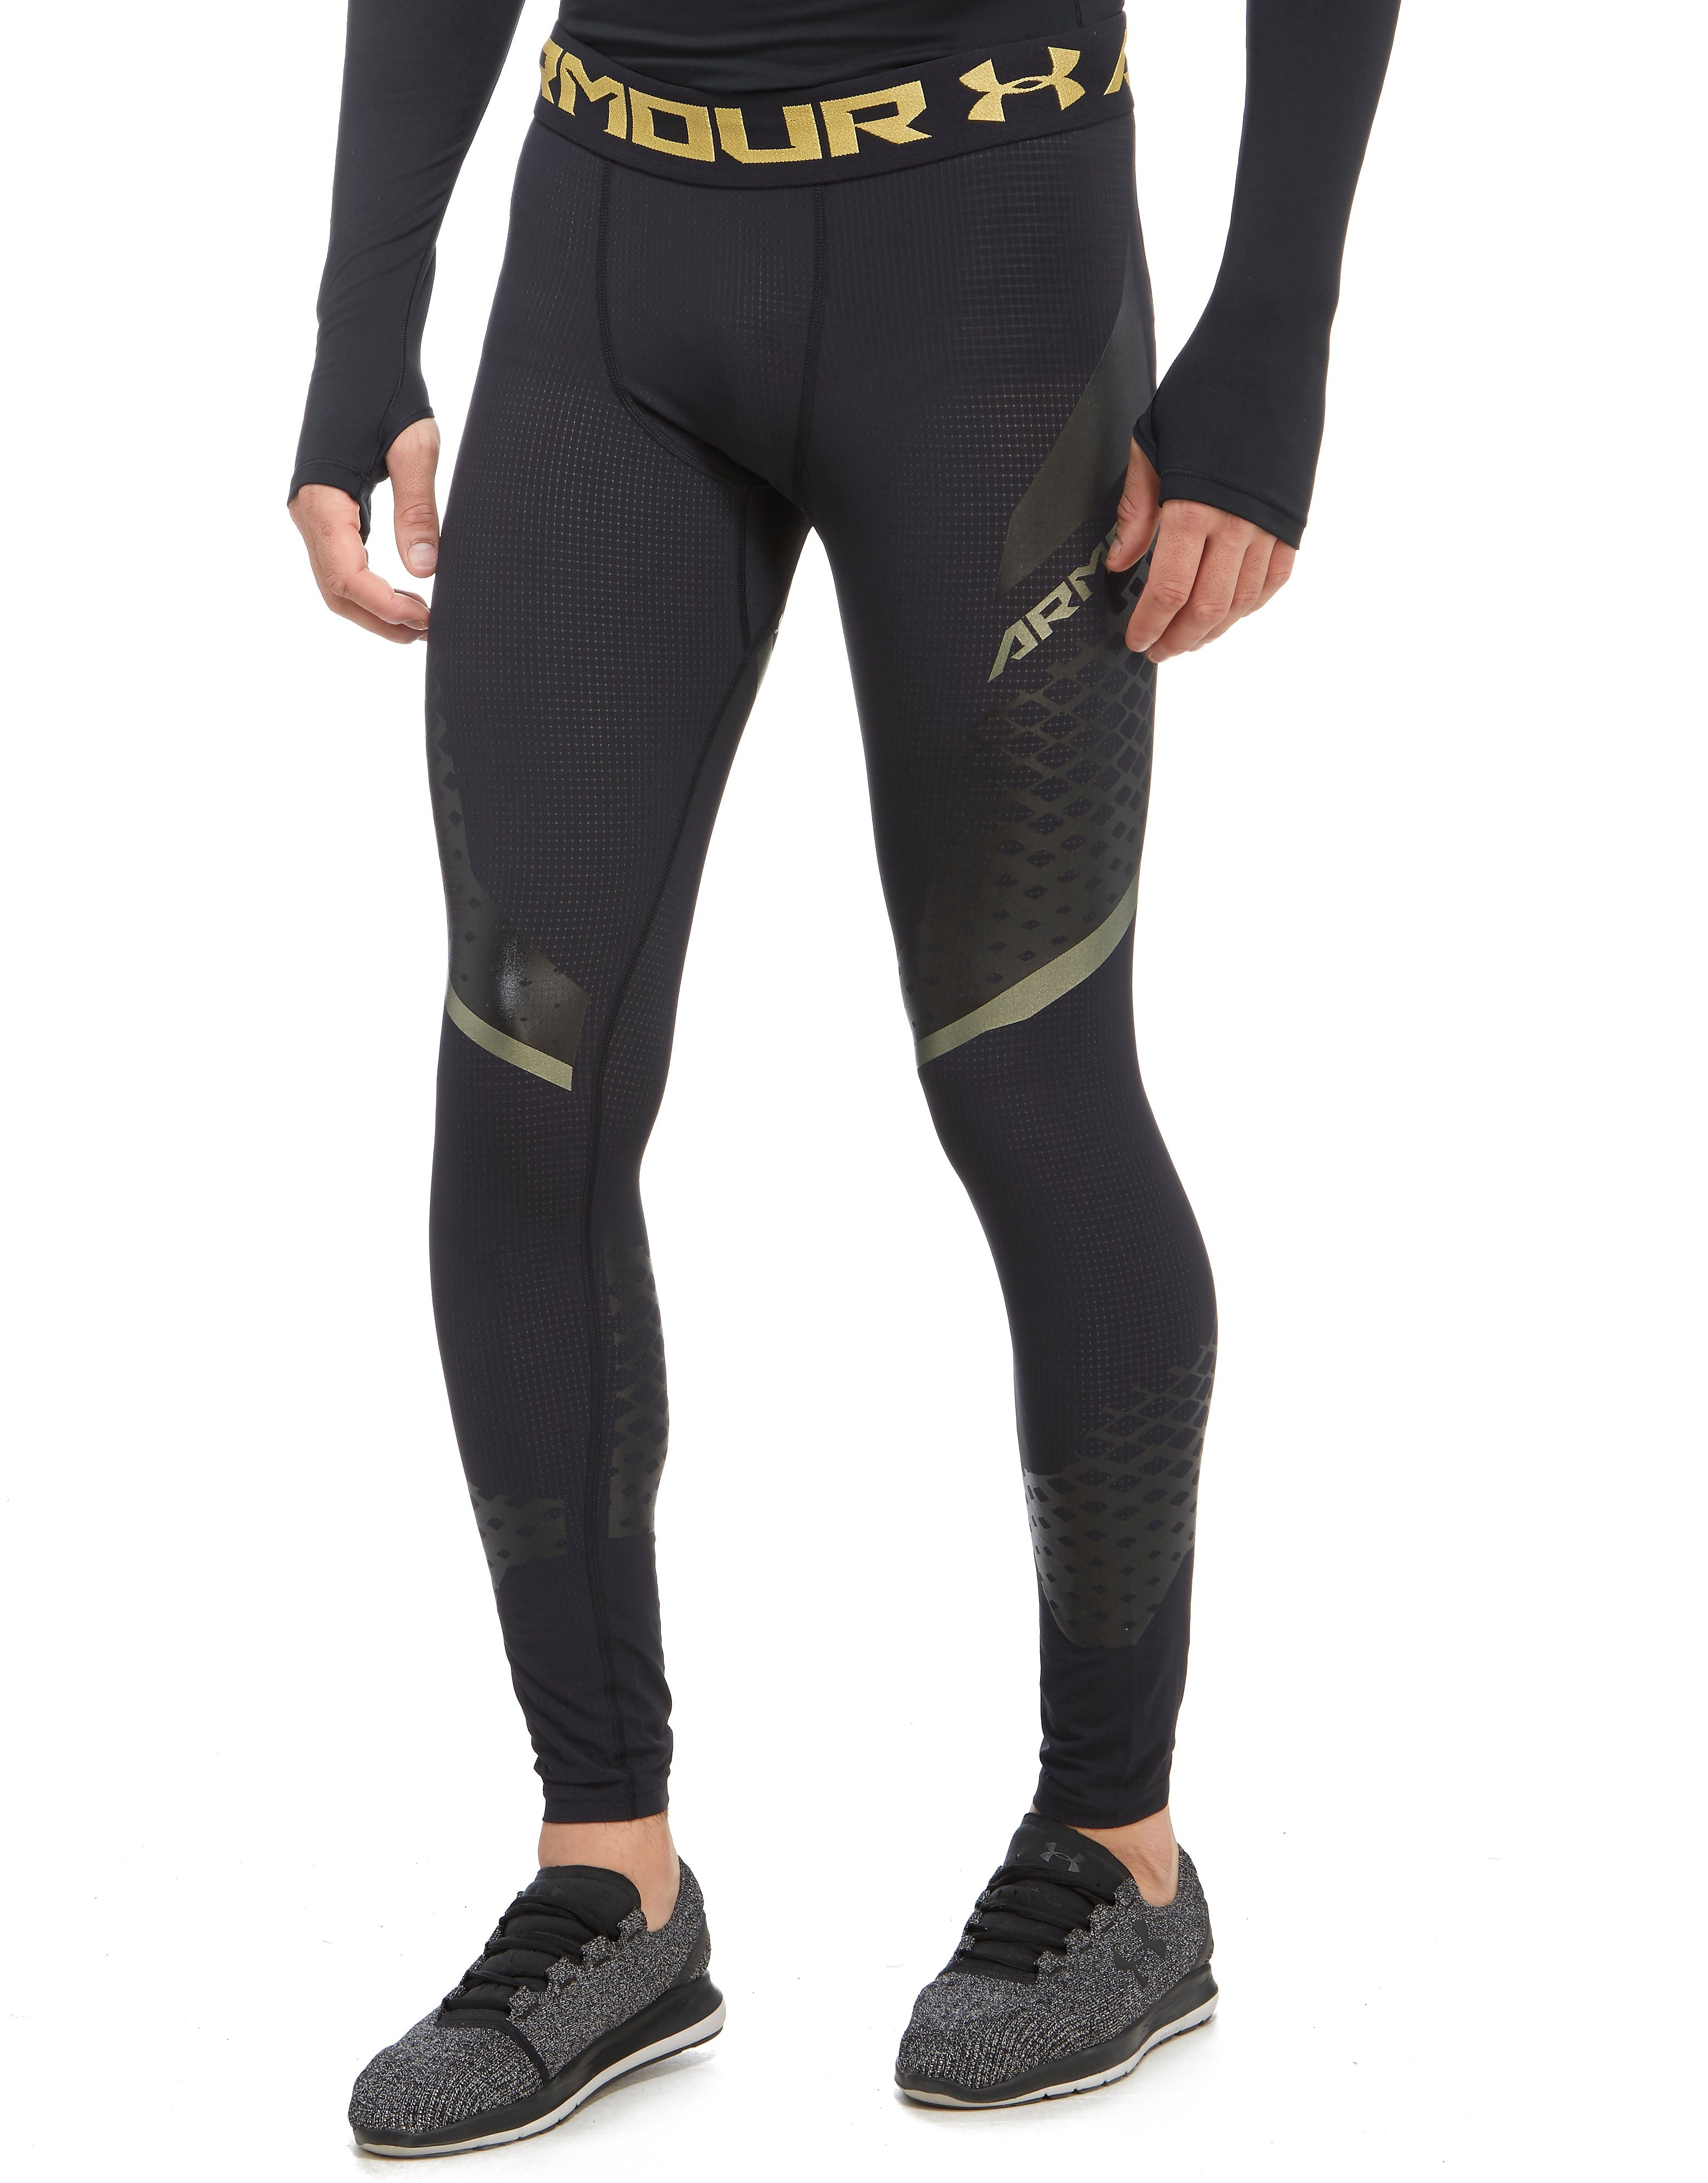 Under Armour HeatGear Armour Zone Compression Tights